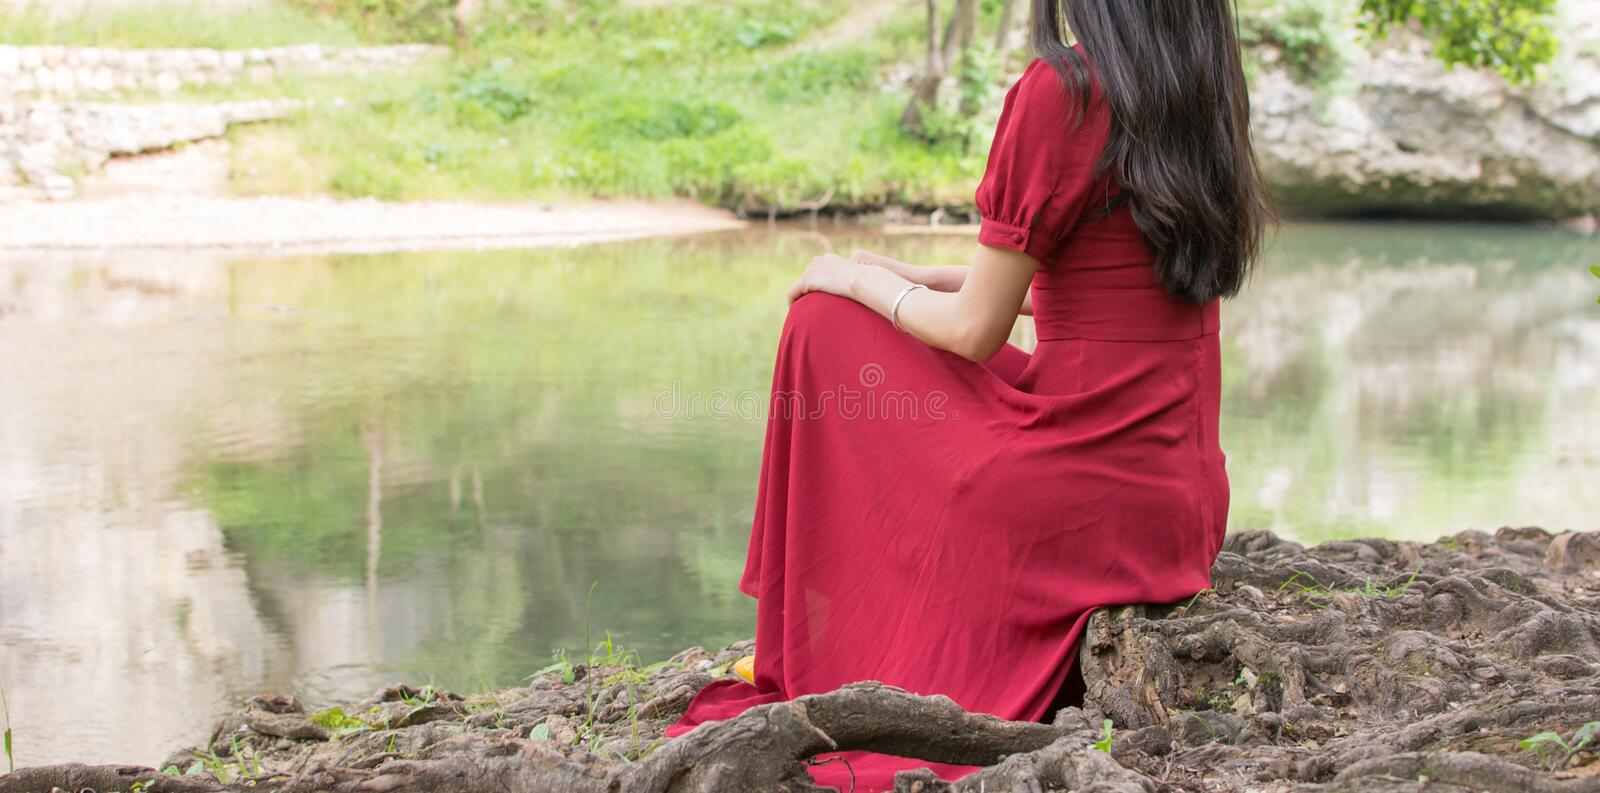 Woman sitting next to a river alone. Fashionable woman sitting next to a river alone royalty free stock image